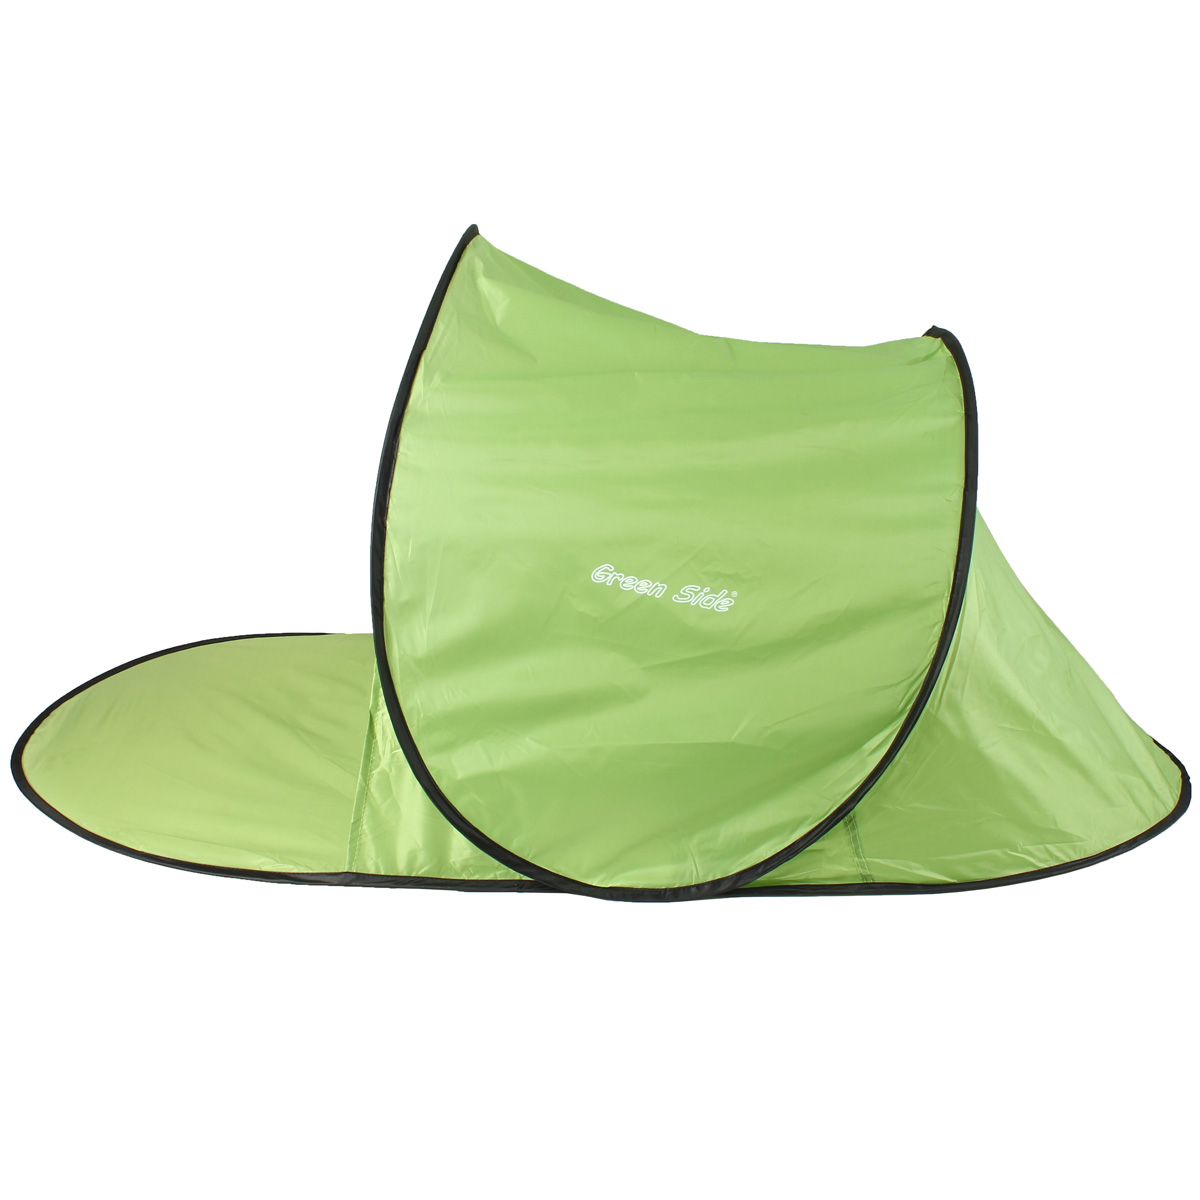 Pop Up Camping Shade Tent Foldable Outdoor Hiking Travel Beach Shelter Green